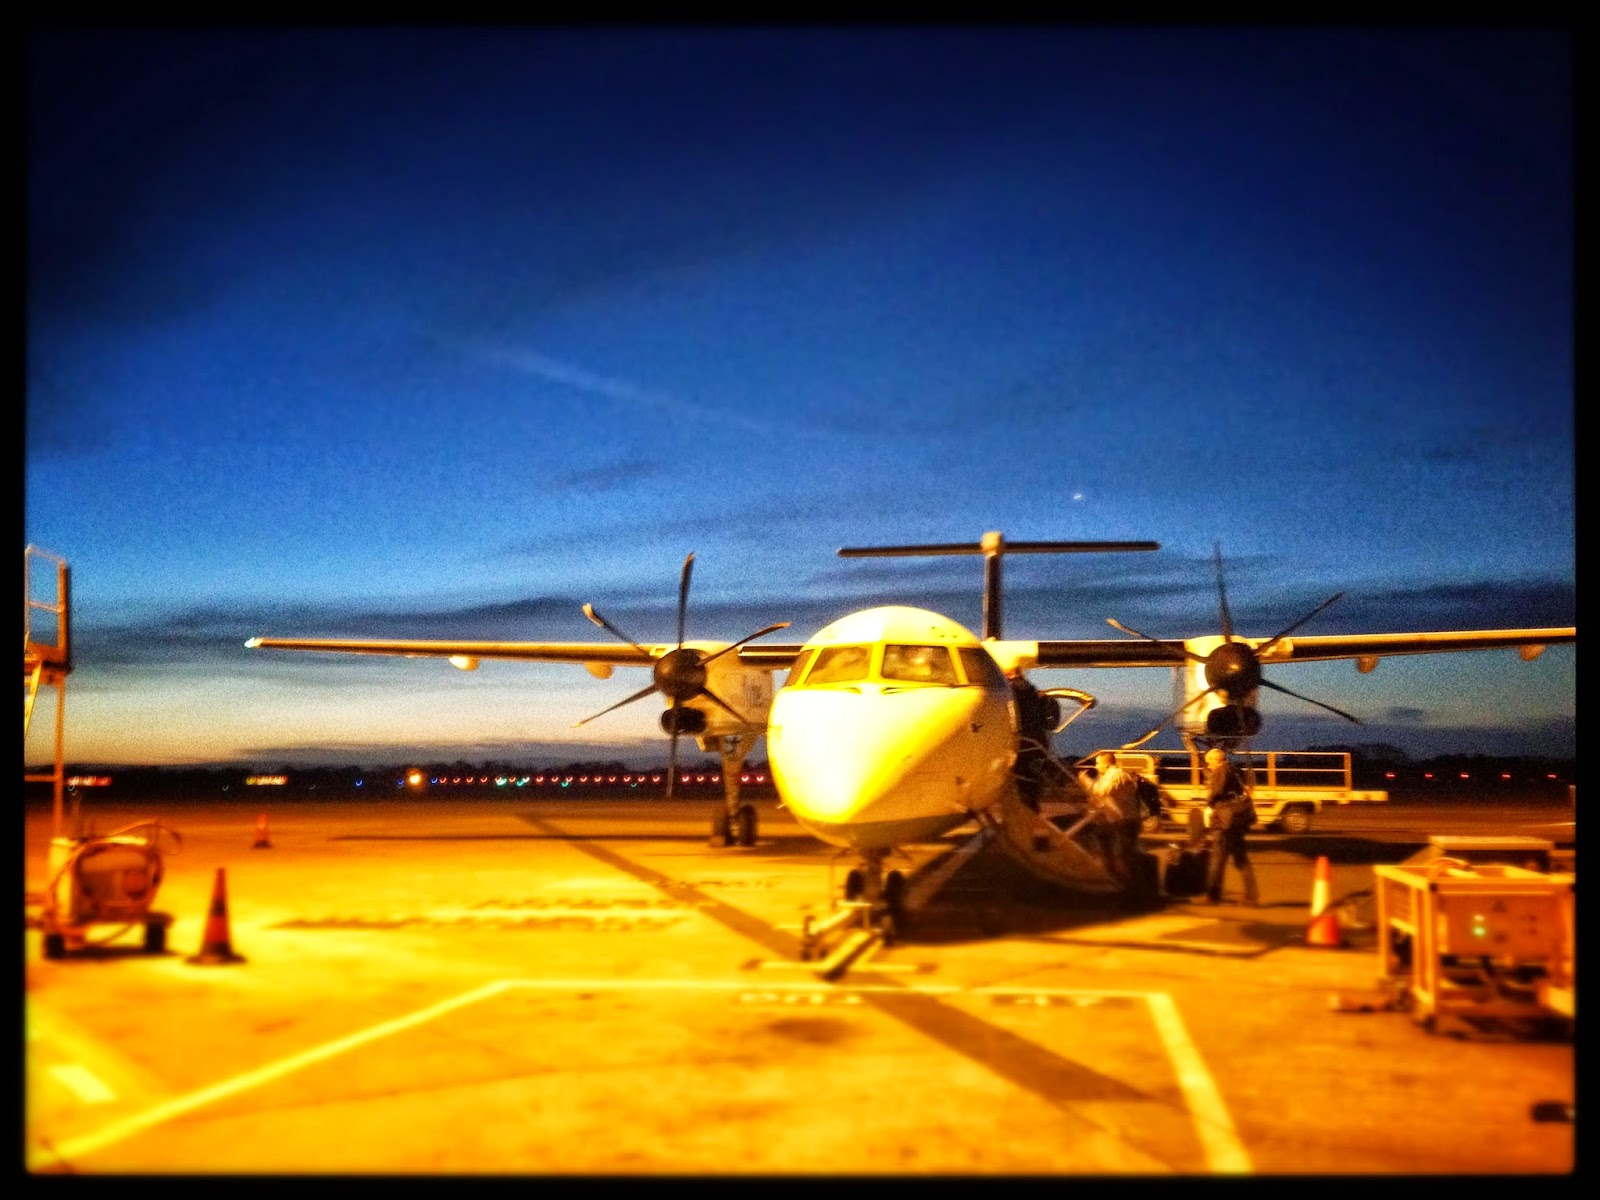 Aberdeen airport flight shetland work business plane airoplane cold morning commute luggage workers construction travel air miles eastern airways flybe, british airways, run way, stand